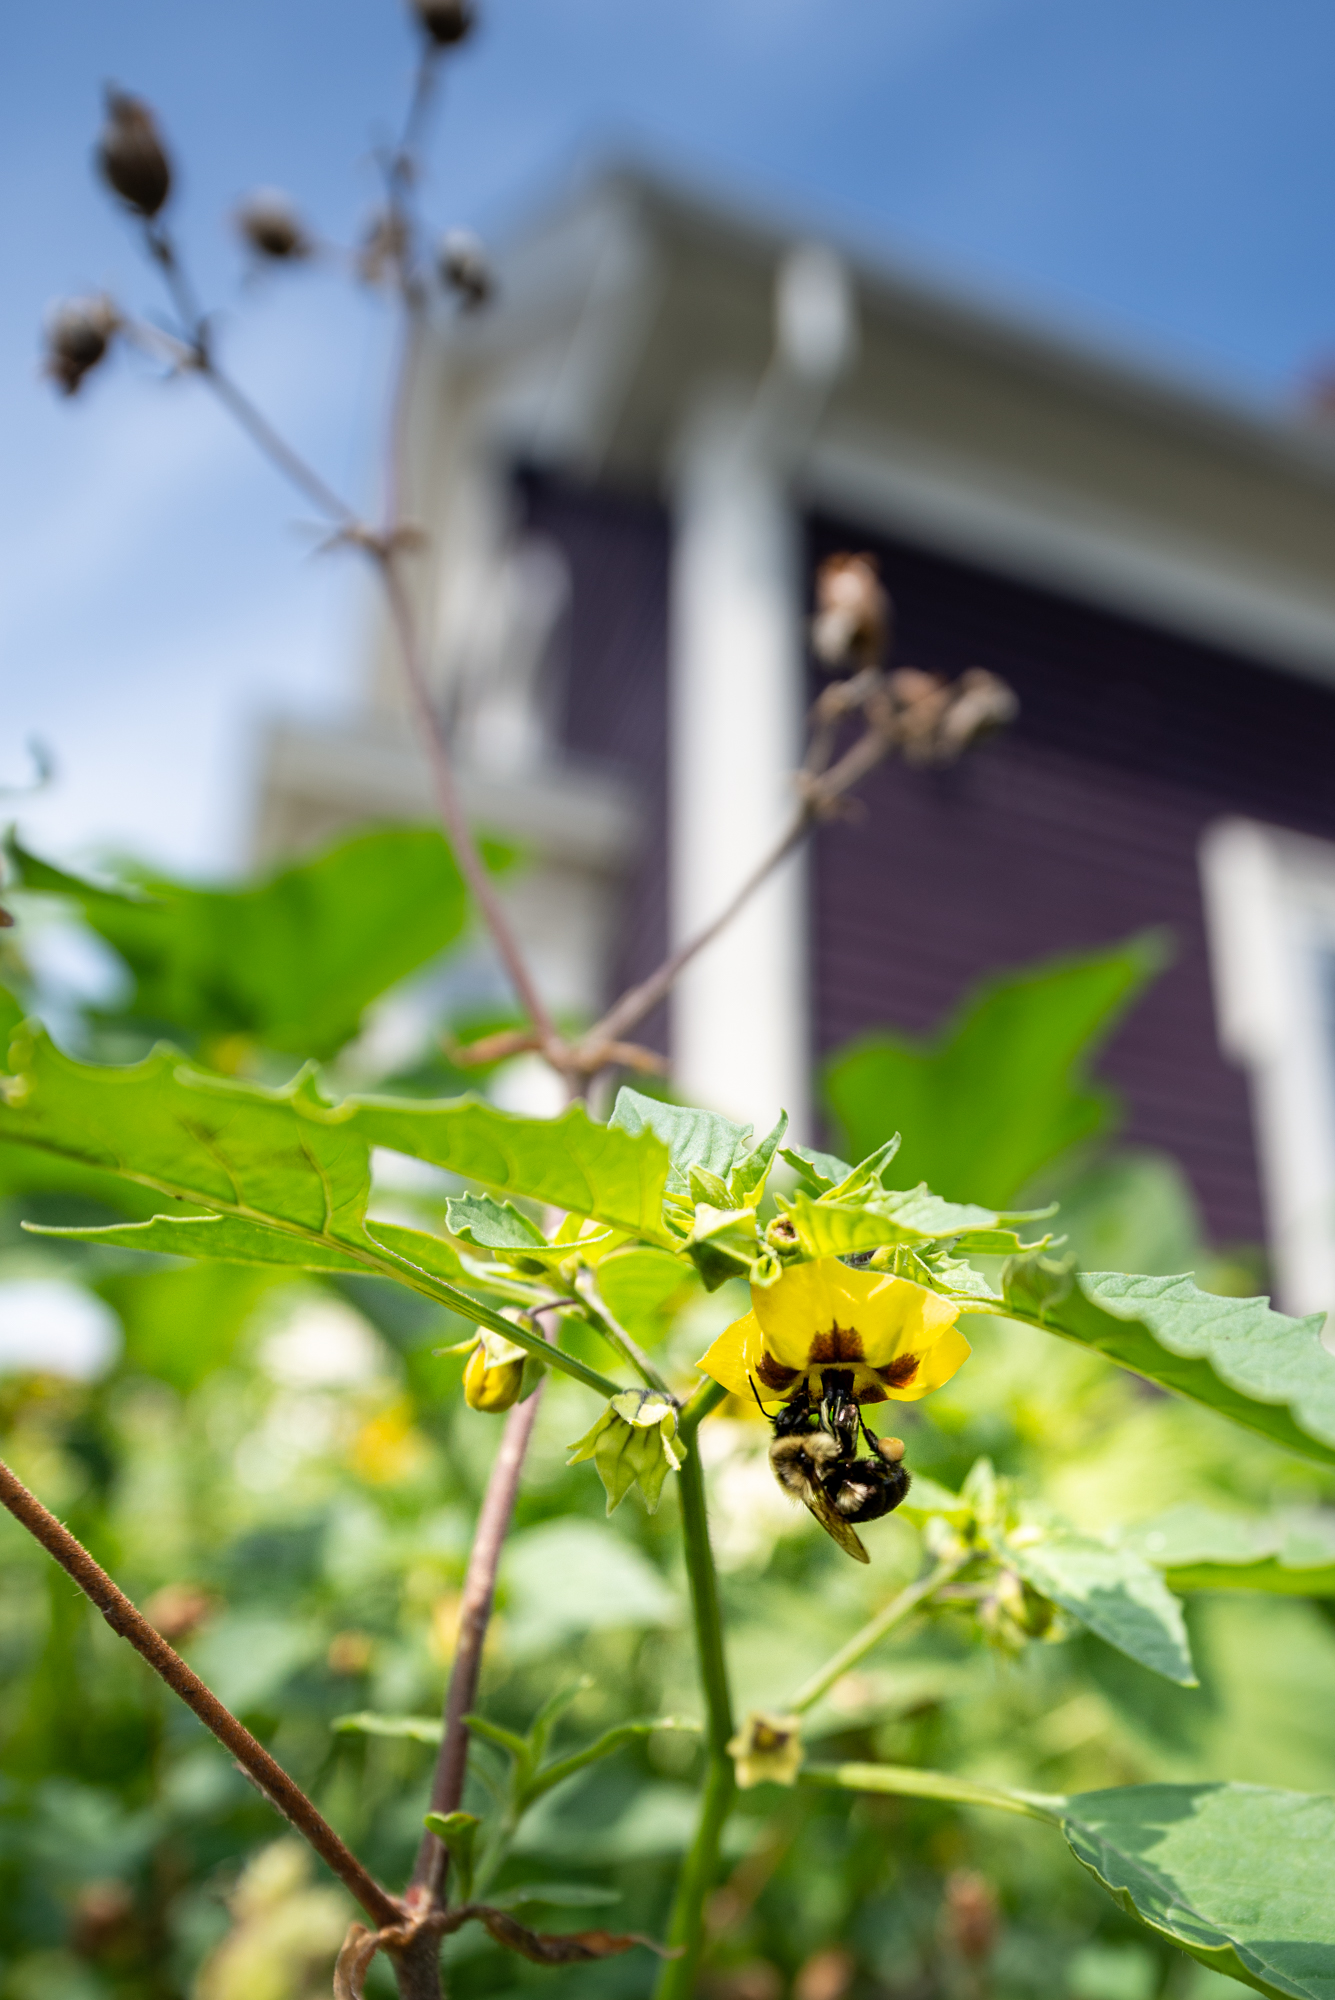 A tomatillo blossom getting rapt attention from a native bumble bee in the garden of Lara Lepionka (Photo: David Newsom)